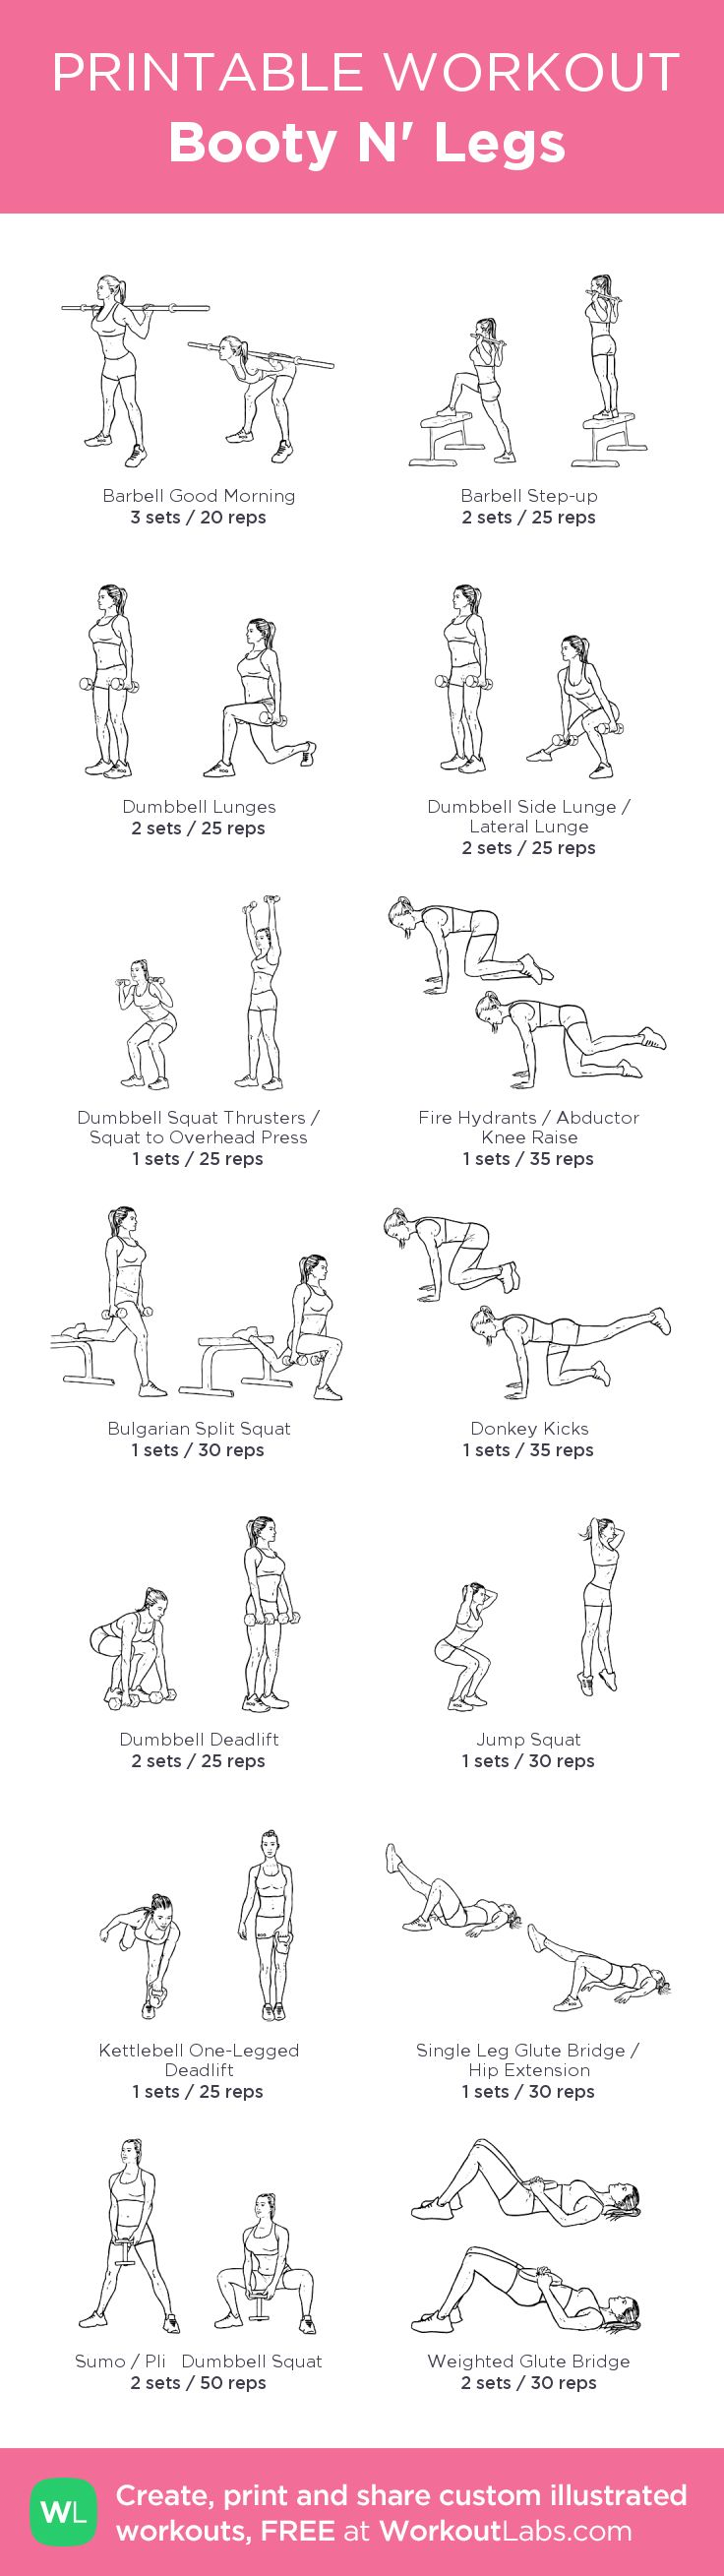 Booty N' Legs: my visual workout created at WorkoutLabs.com • Click through to customize and download as a FREE PDF! #customworkout